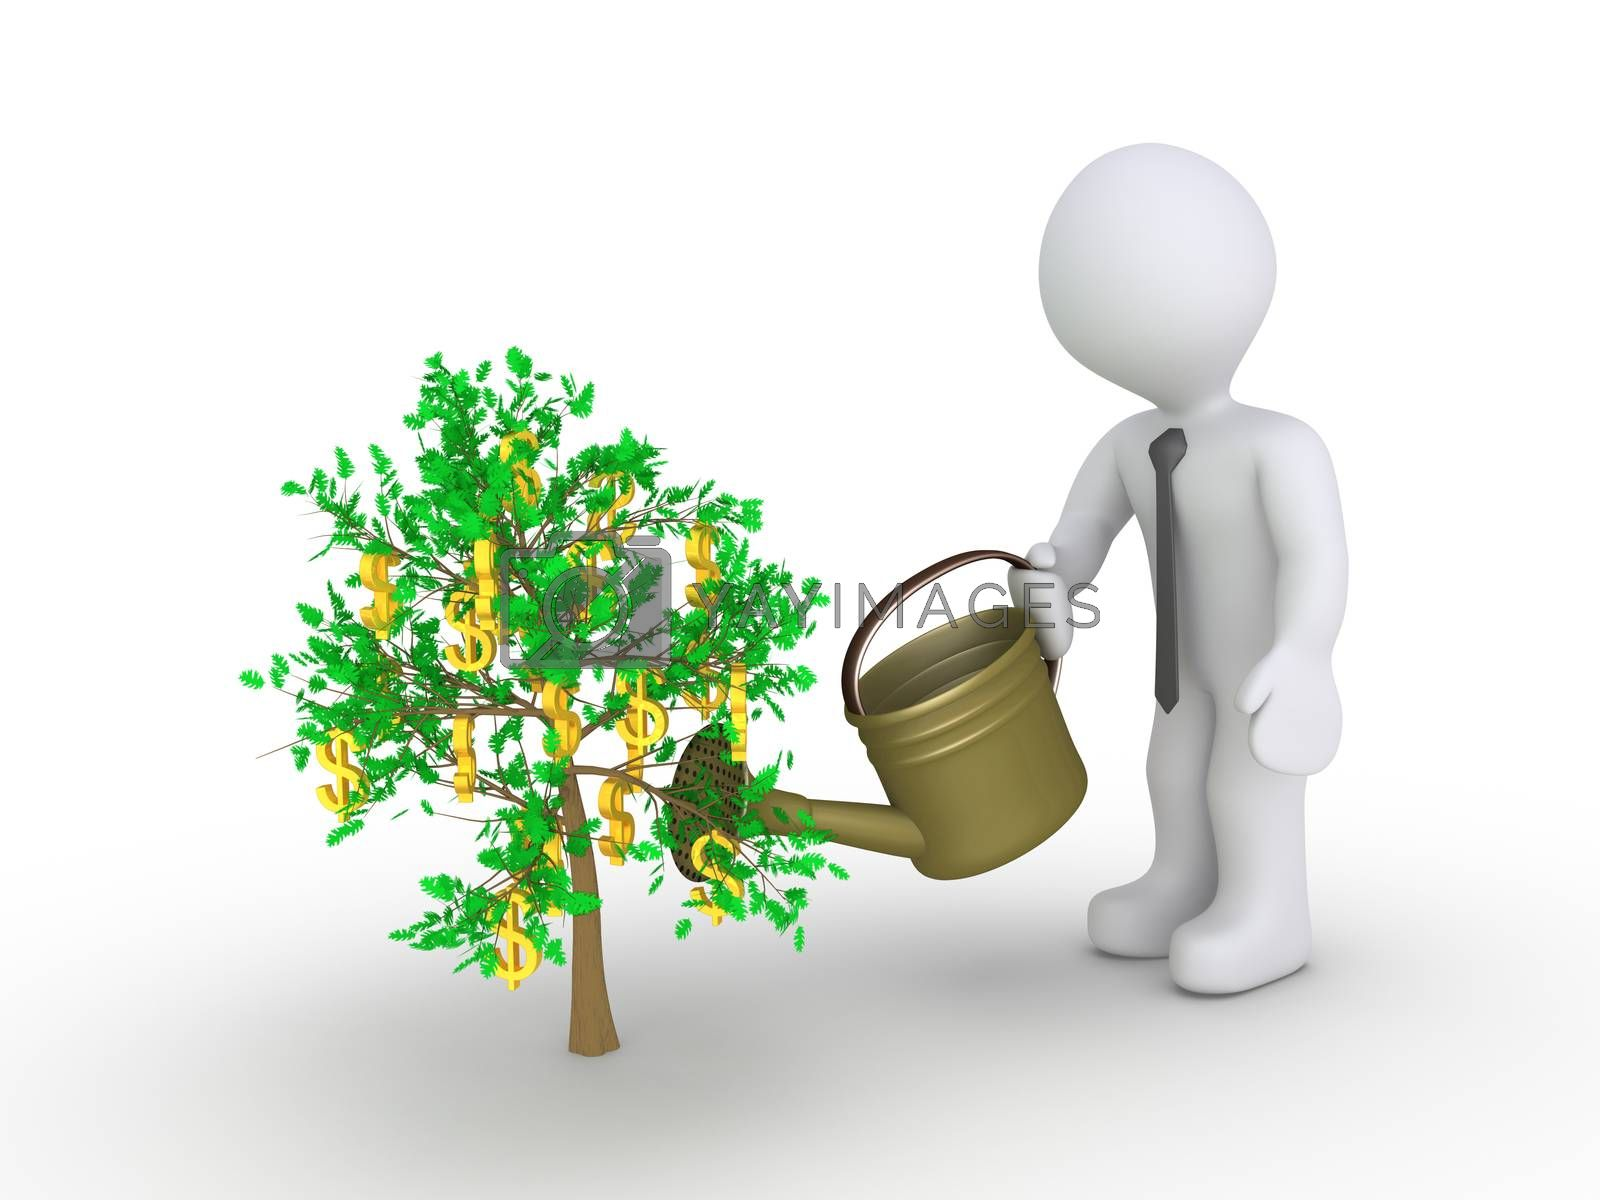 Businessman holding a watering can is about to water the plant with dollars hanging from it